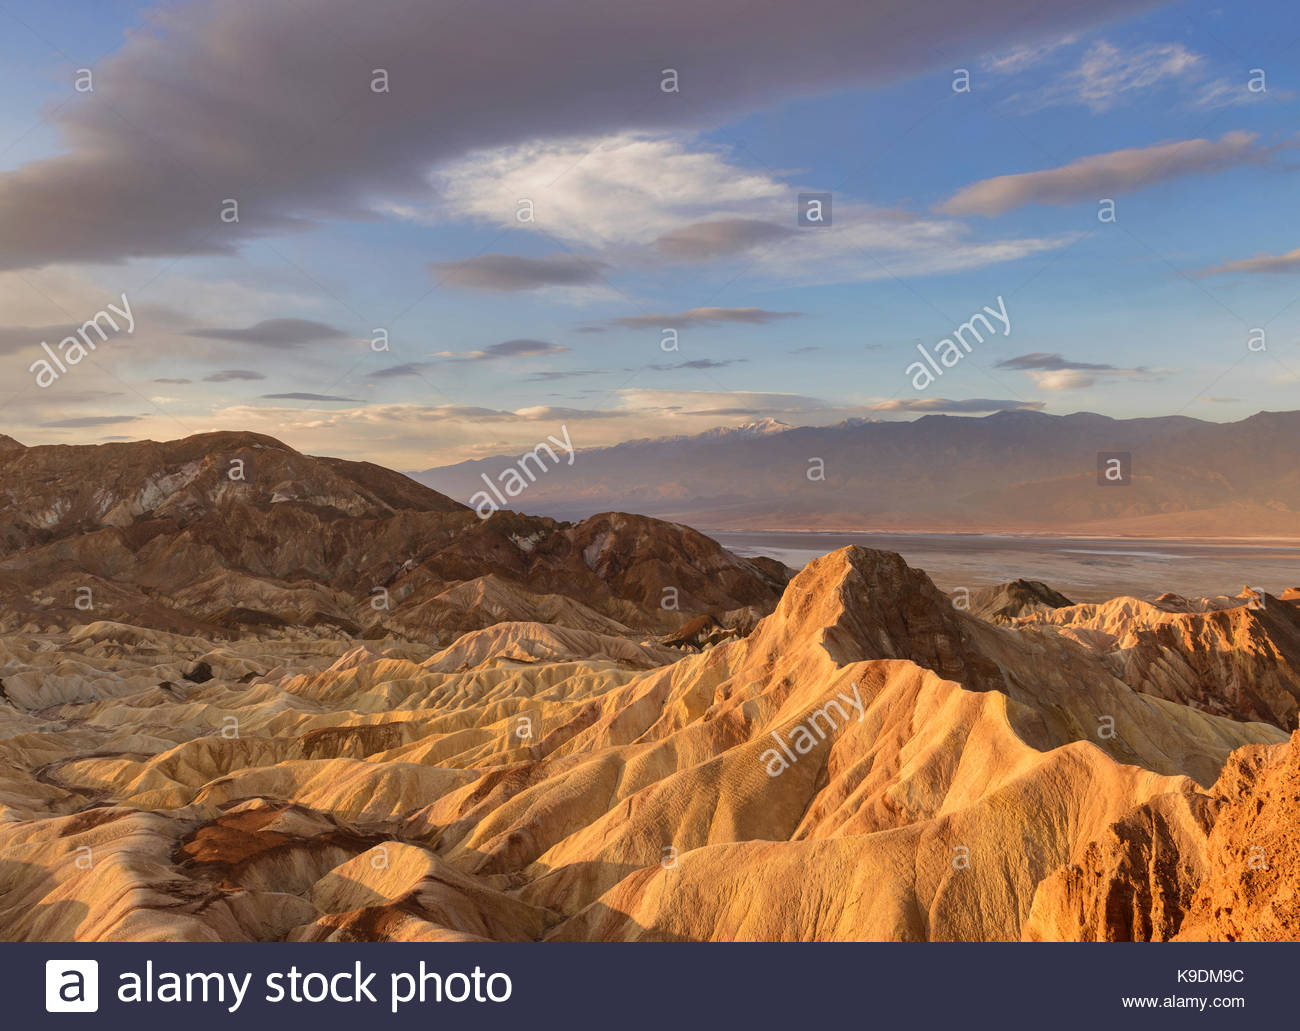 Manley Beacon and Clouds at Dawn from Zabriskie Point, Death Valley National Park, California - Stock Image